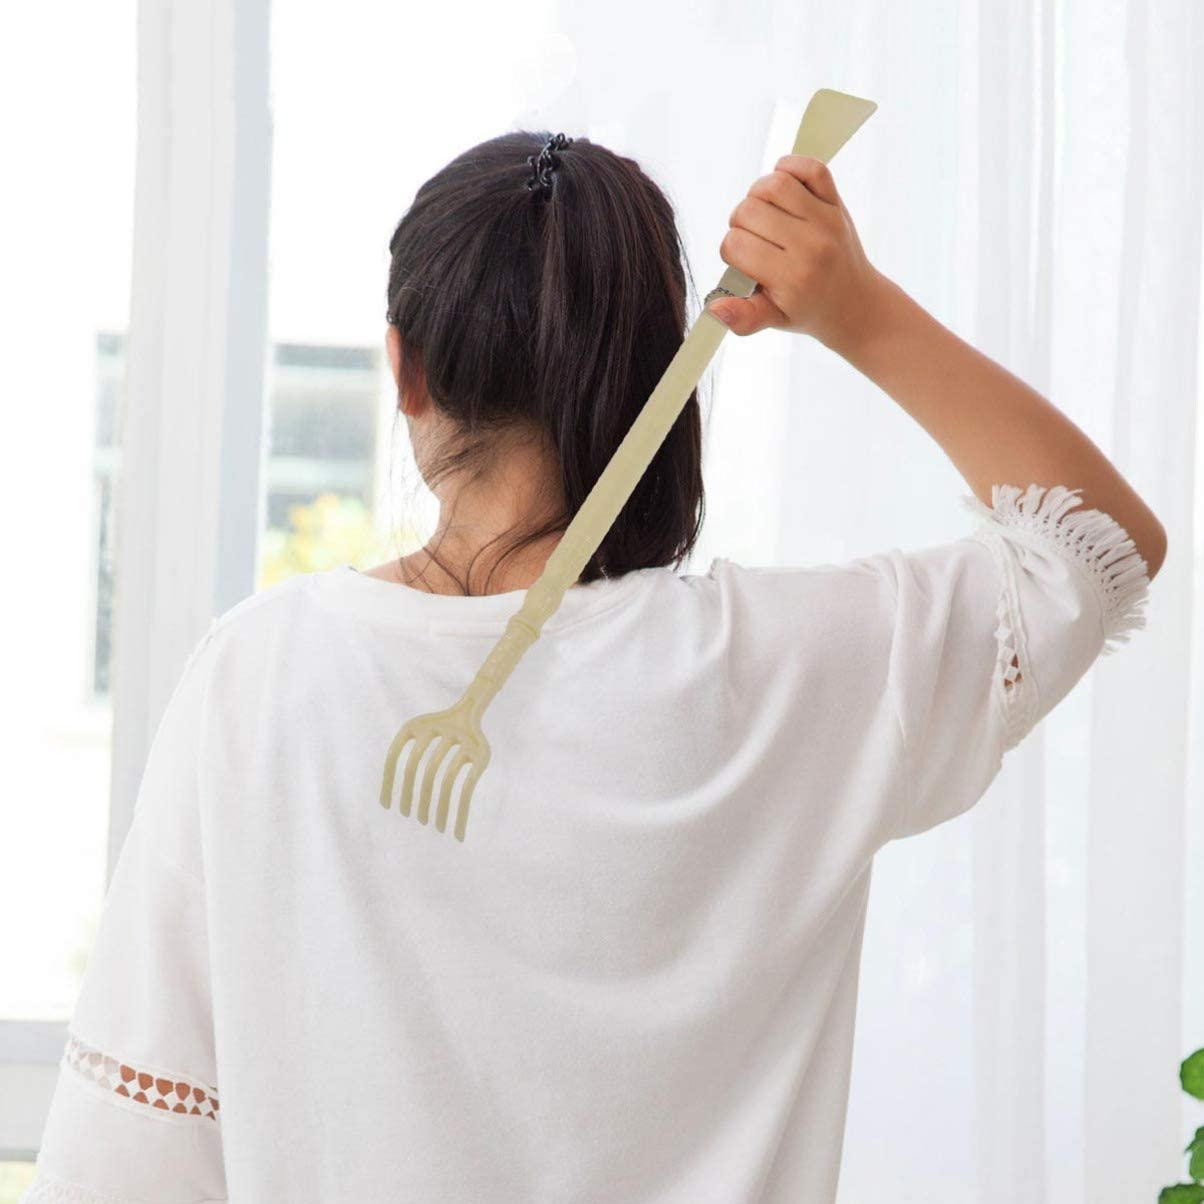 Healifty Back Scratcher with Shoe Horn Long Handle Shoe Horn Hanging Shoe Horn Massage Claw PP Shoe Horn for Itchy Backs and Putting on Shoes While Standing Pink